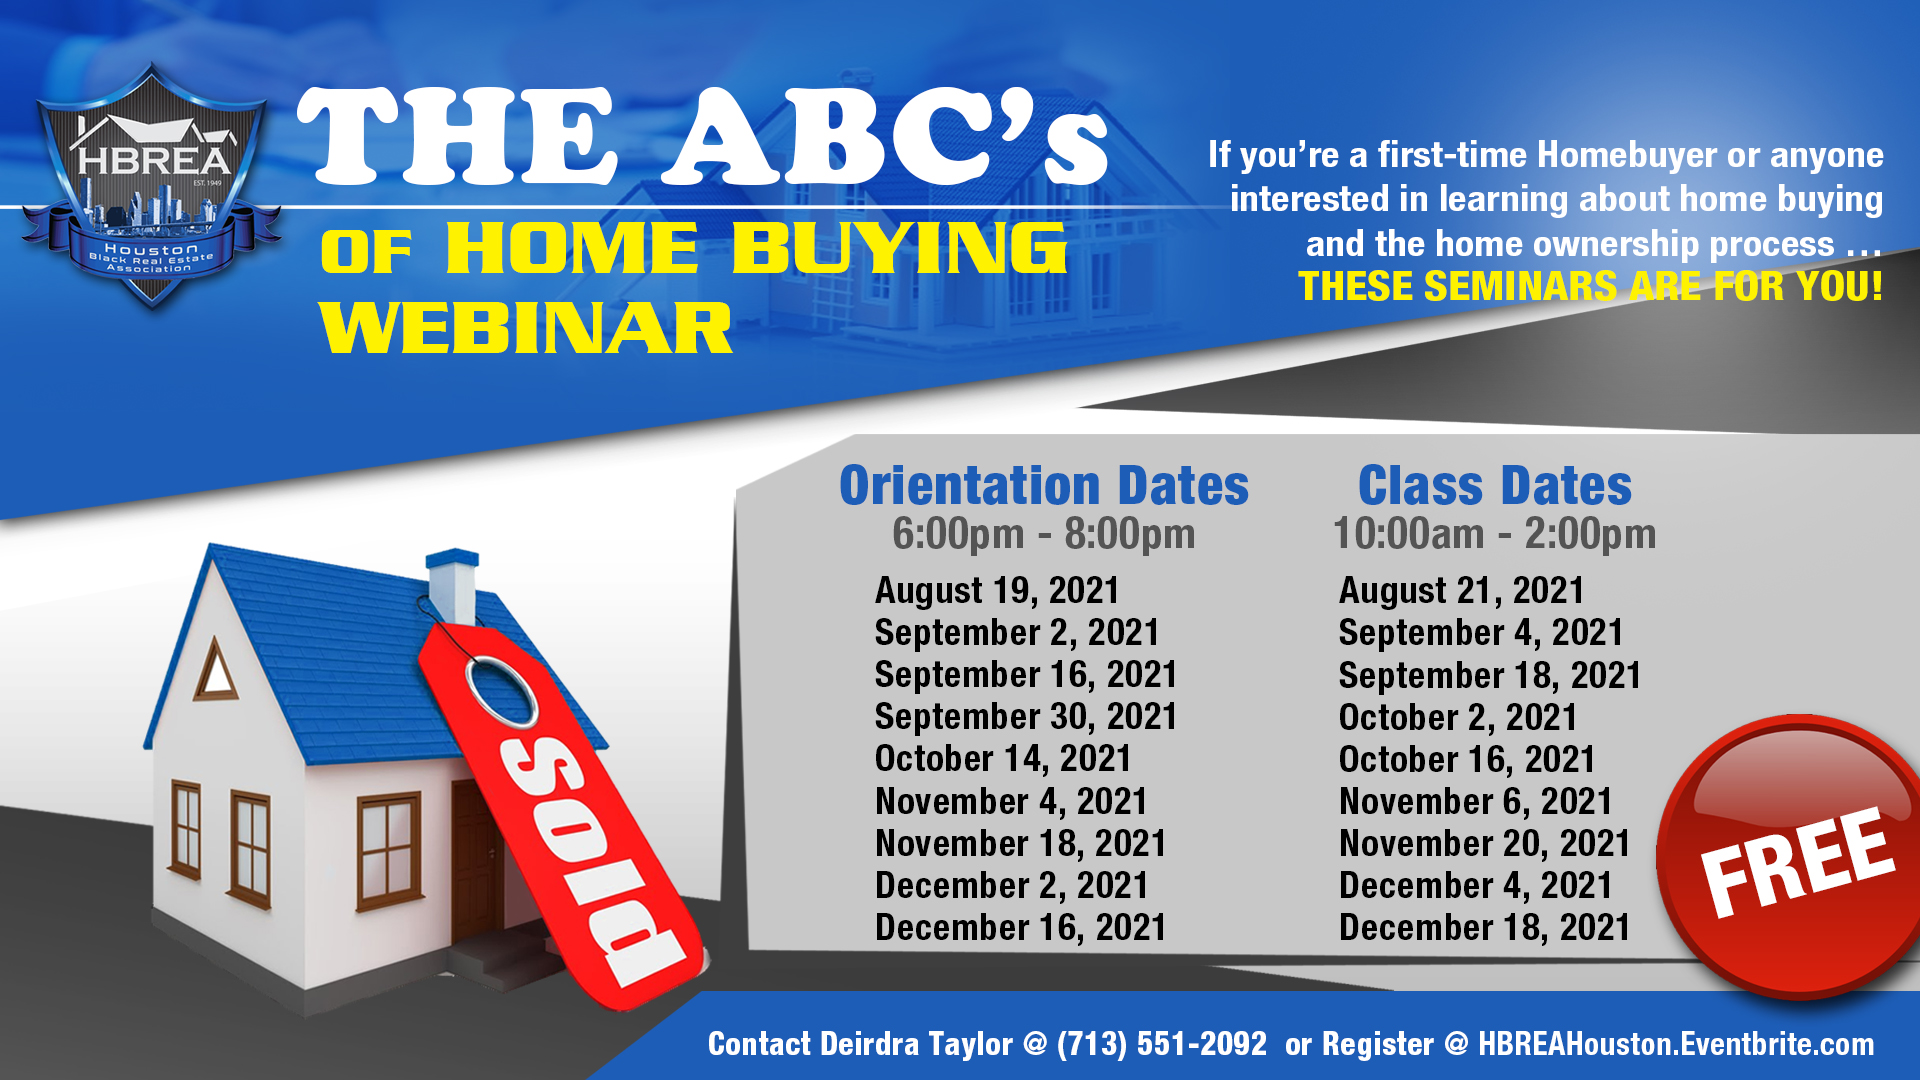 The ABC's of Homebuying